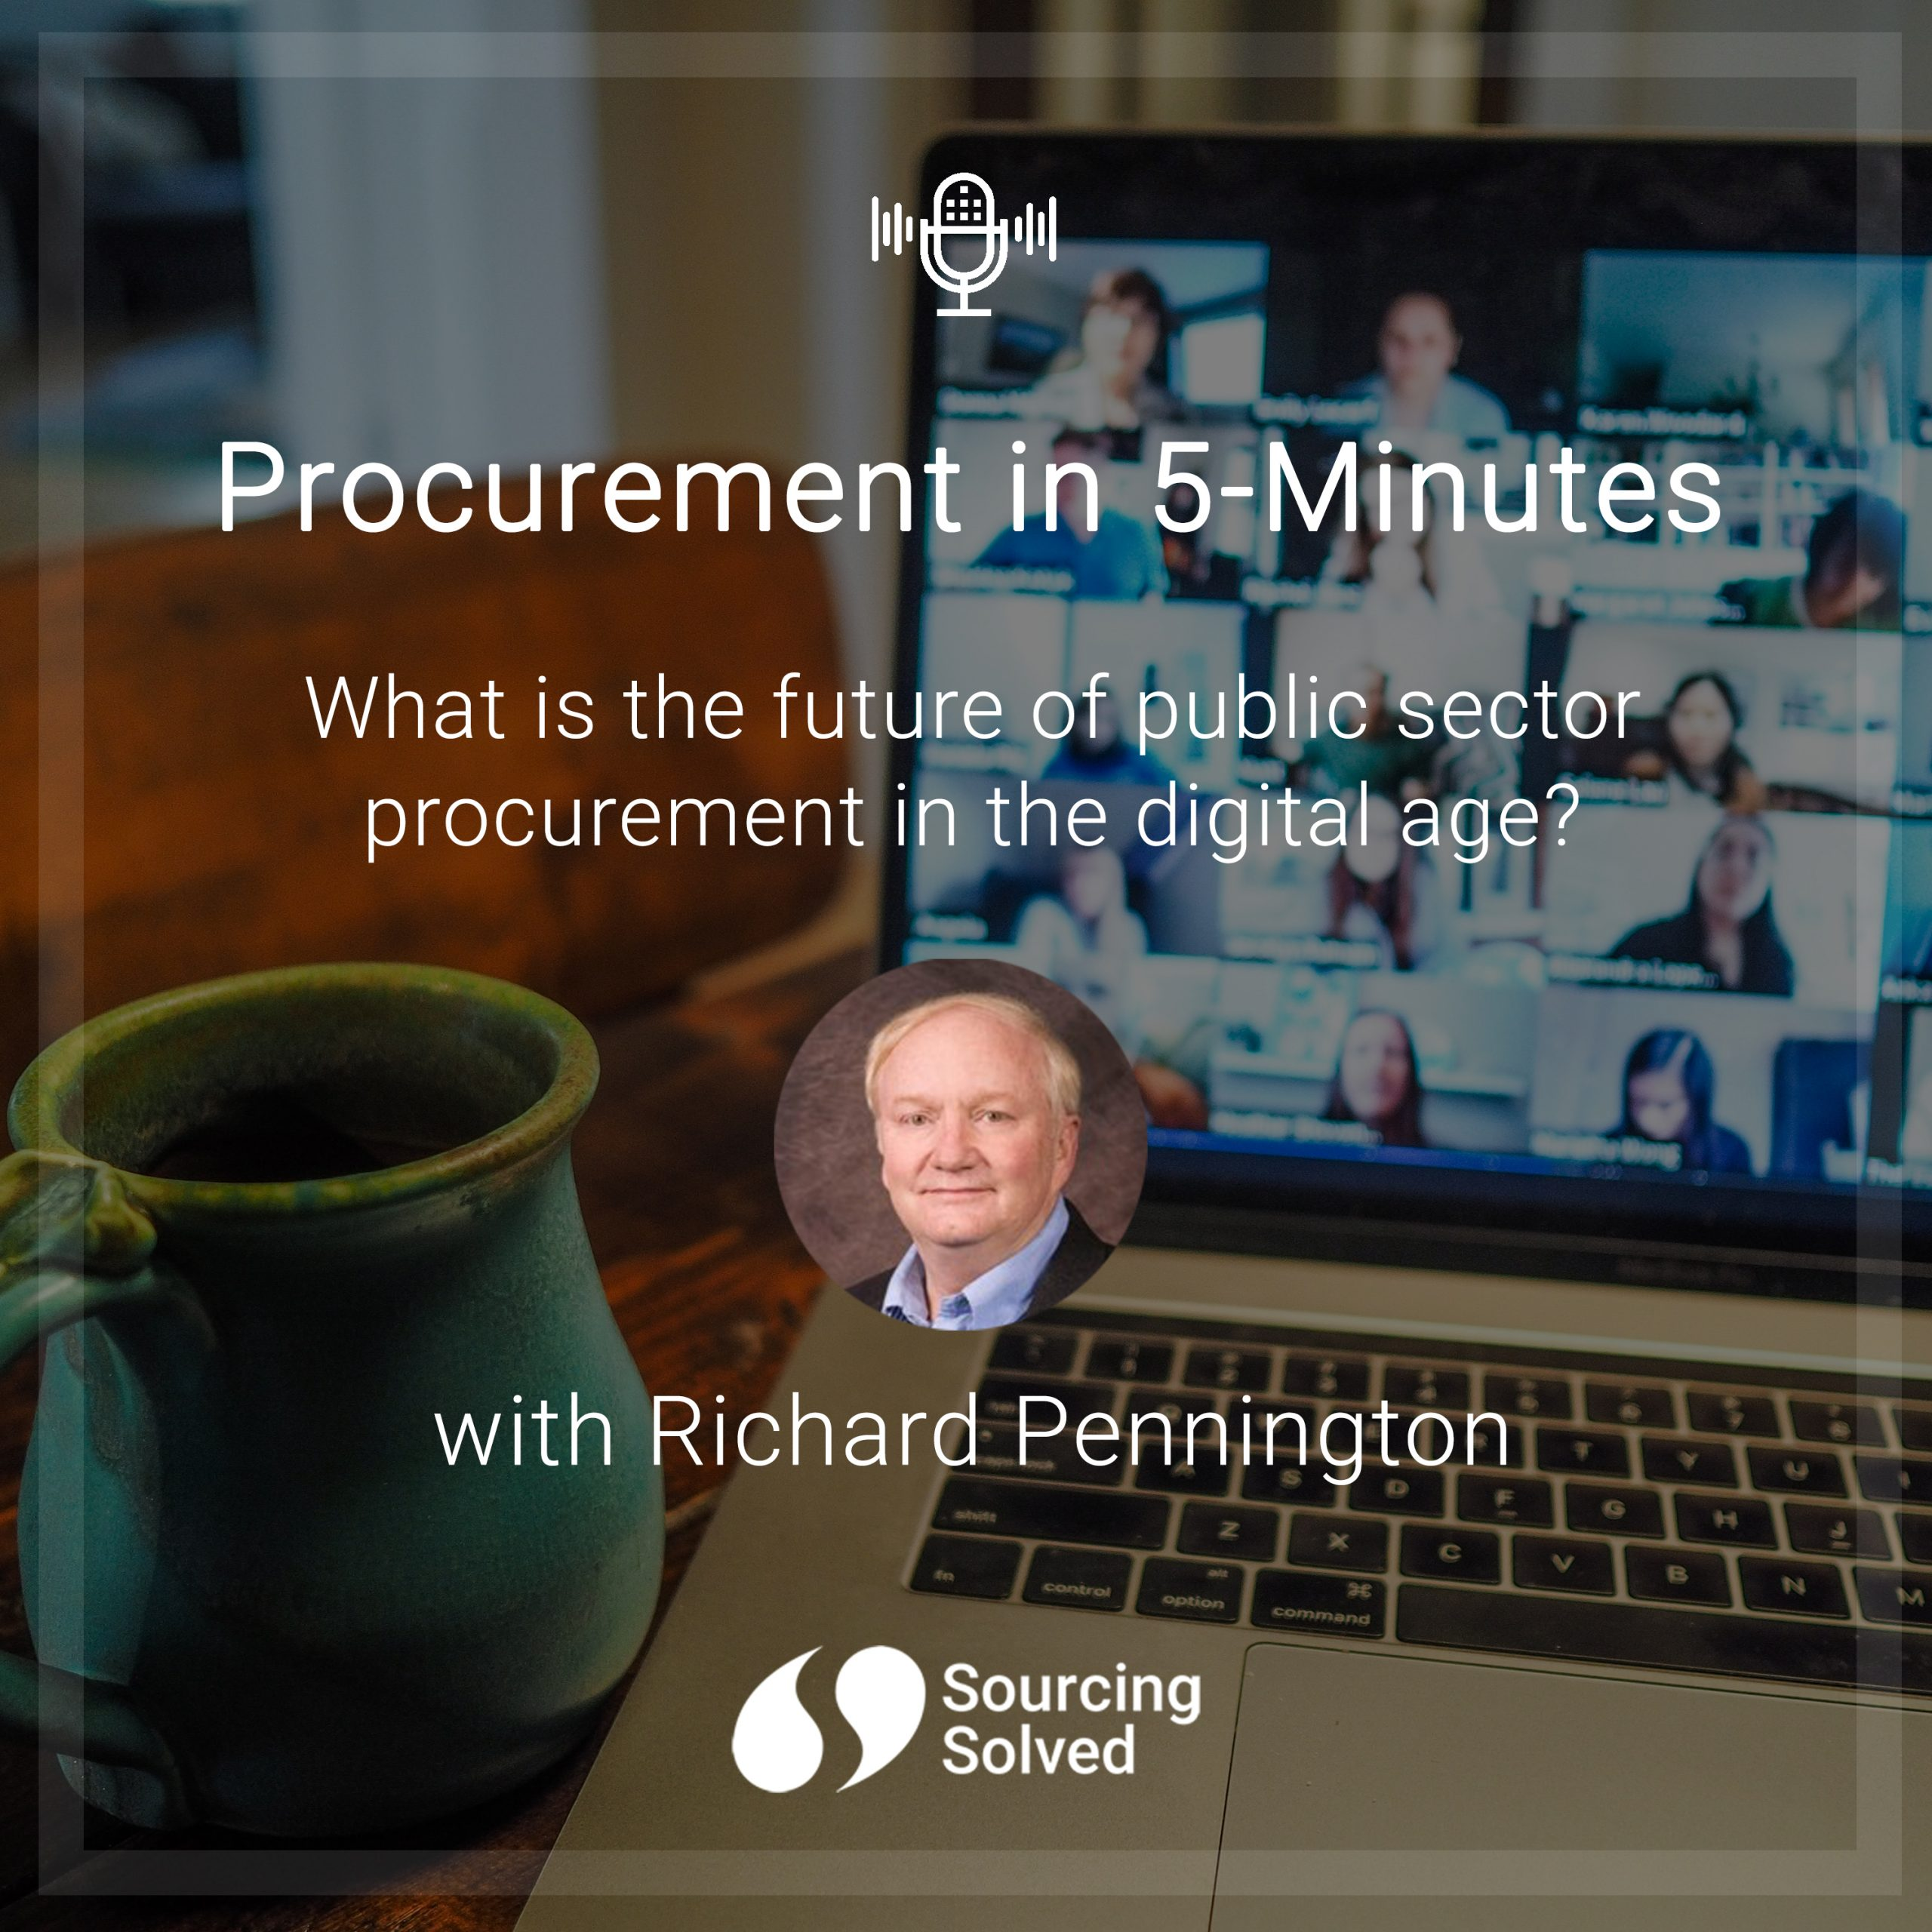 Procurement in 5-Minutes: What is the future of public sector procurement in the digital age?